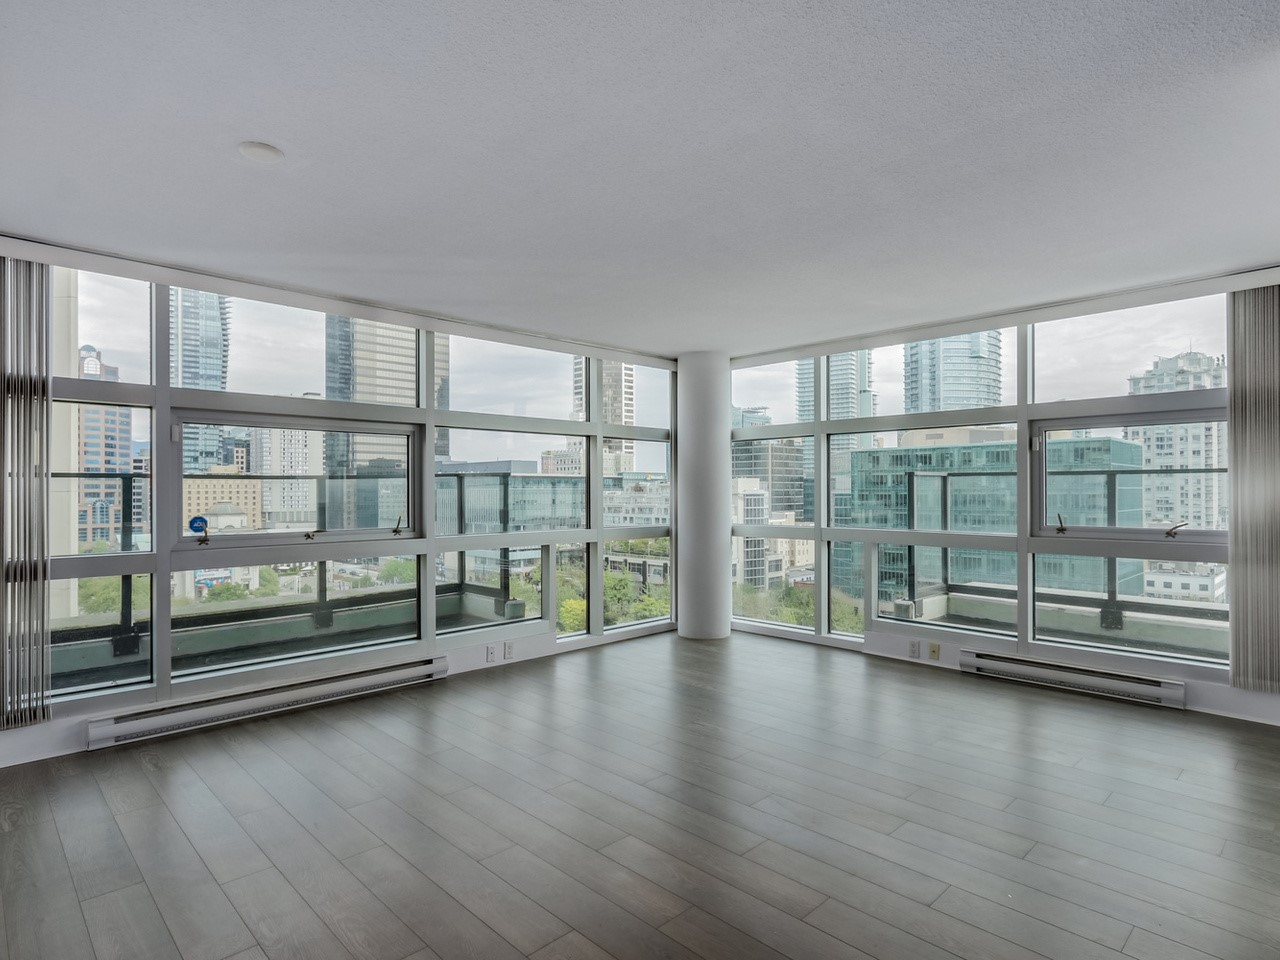 Vancouver Investment Property Property Sale News